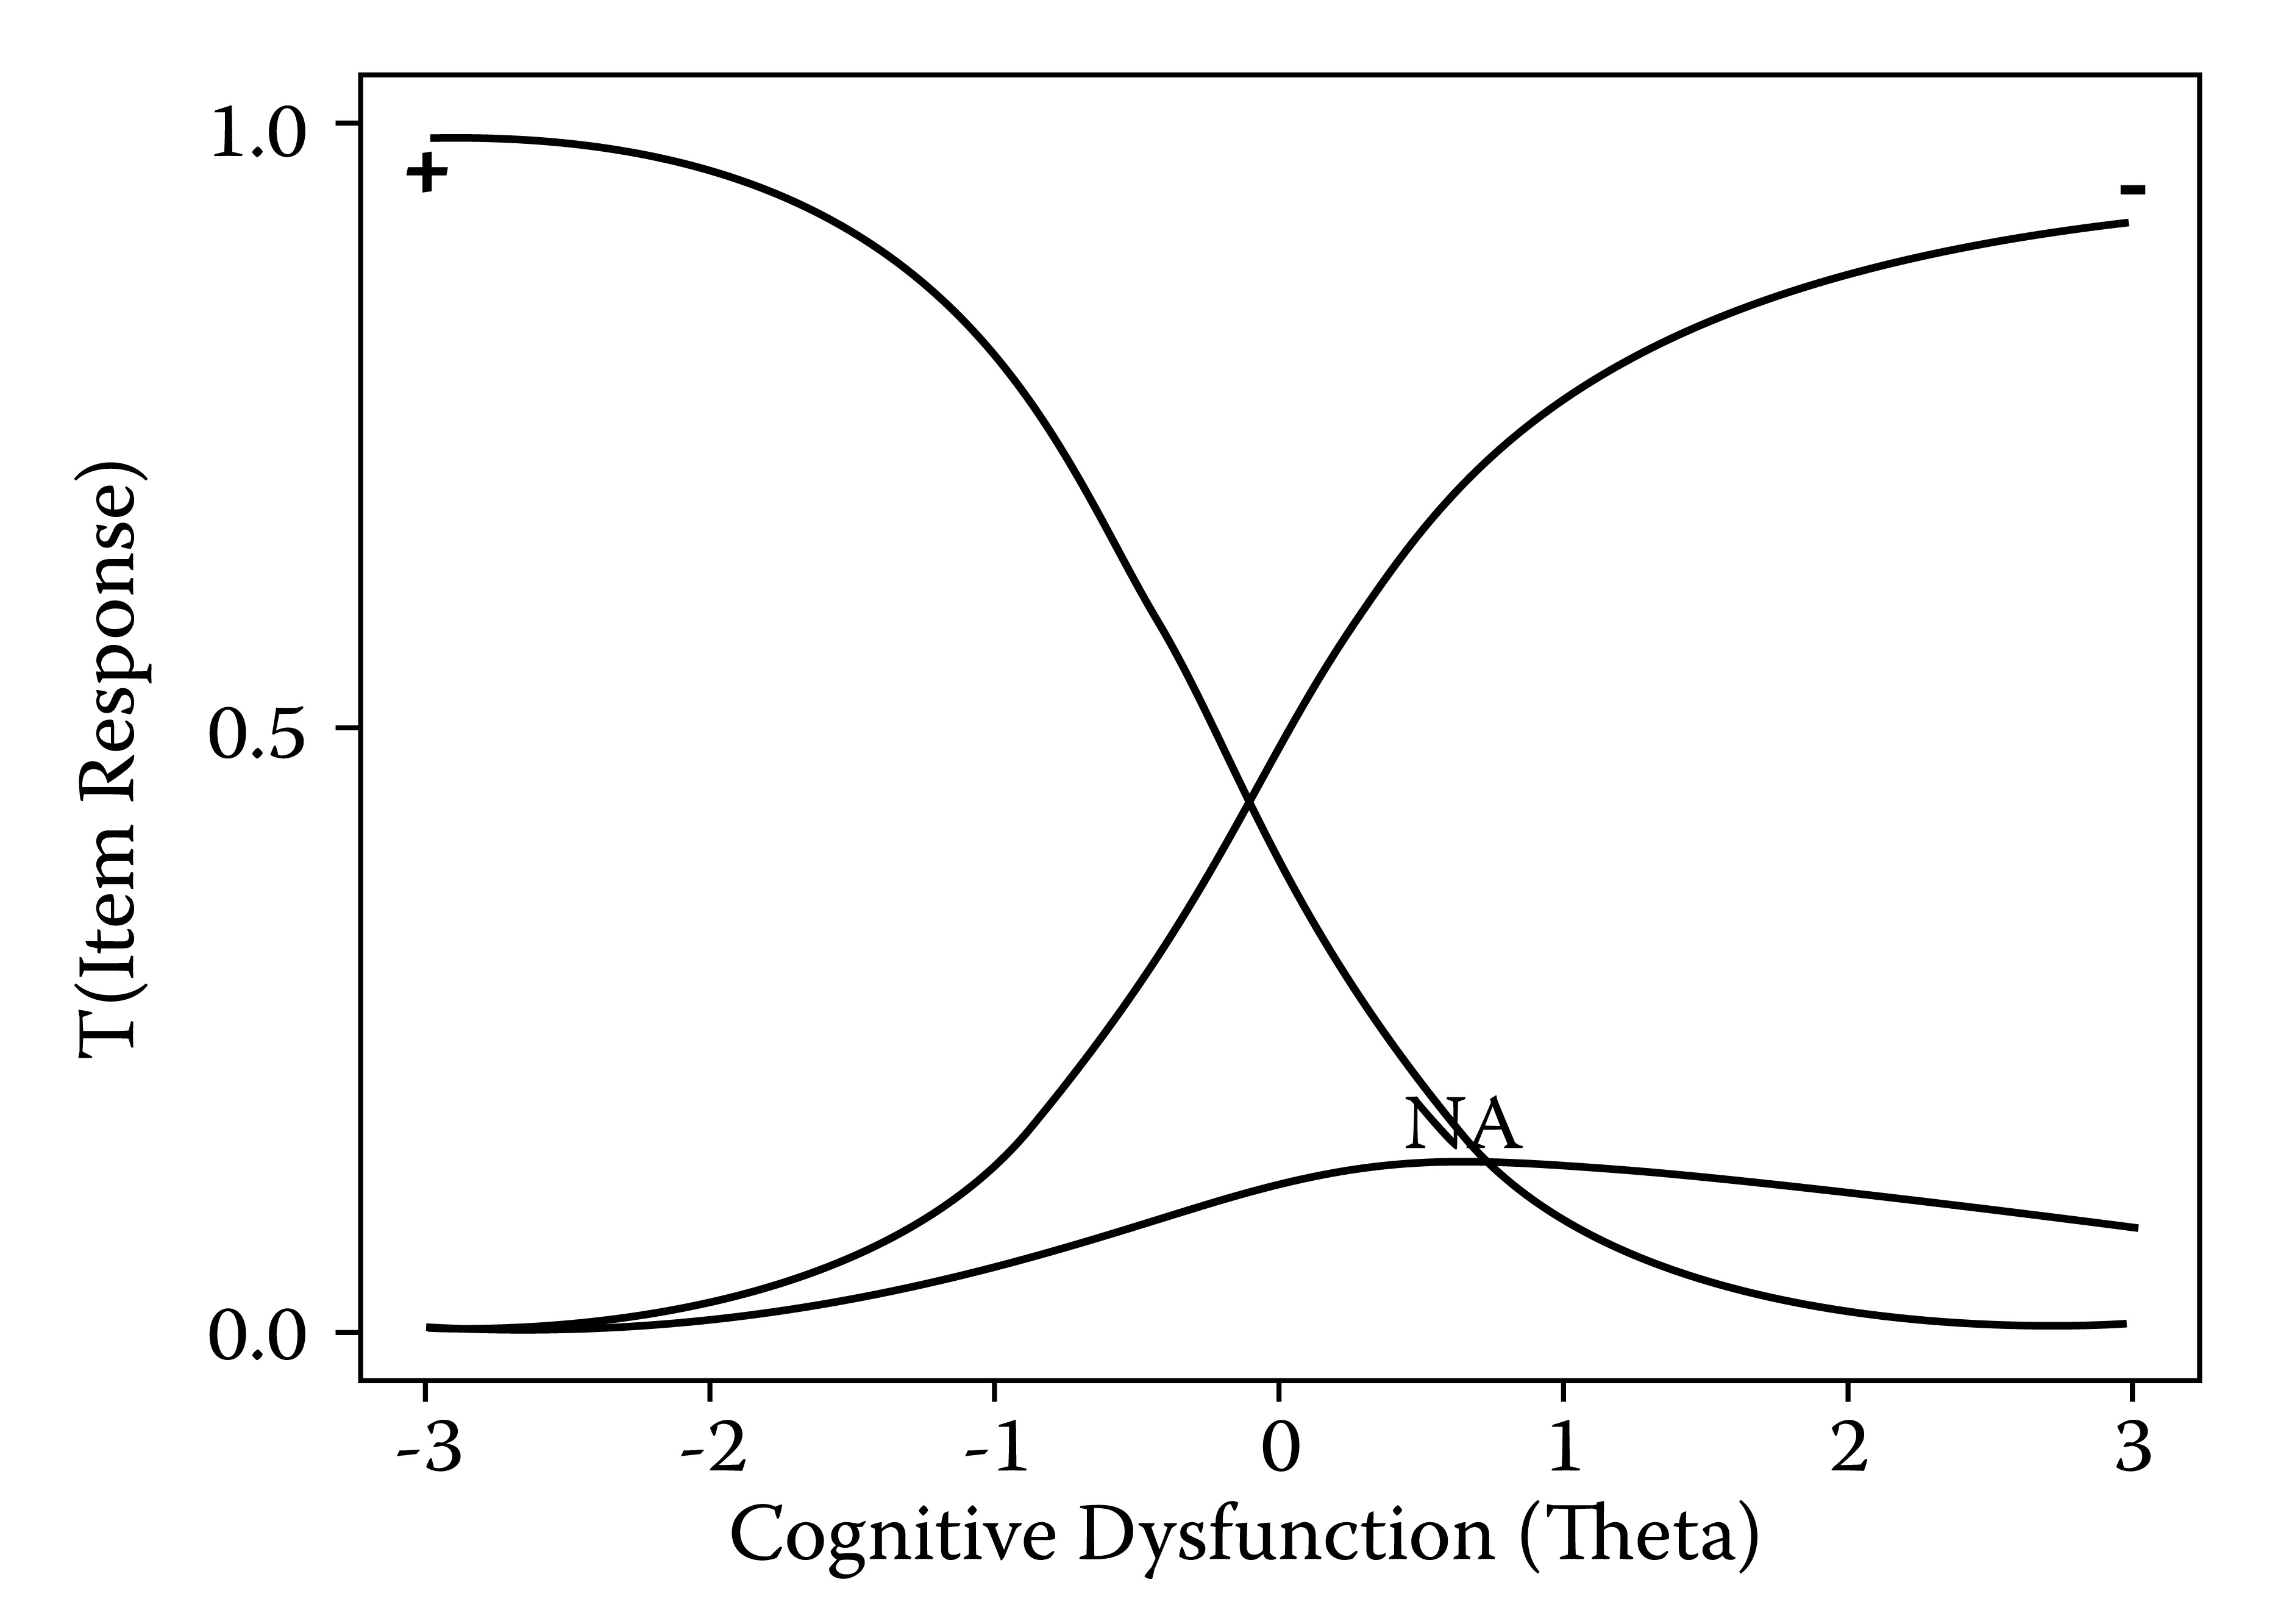 "Trace lines corresponding to item parameters obtained by Huber (1993) in his analysis of the item ""Count down from 20 by 3s"" on the Short Portable Mental Status Questionnaire (SPMSQ)"